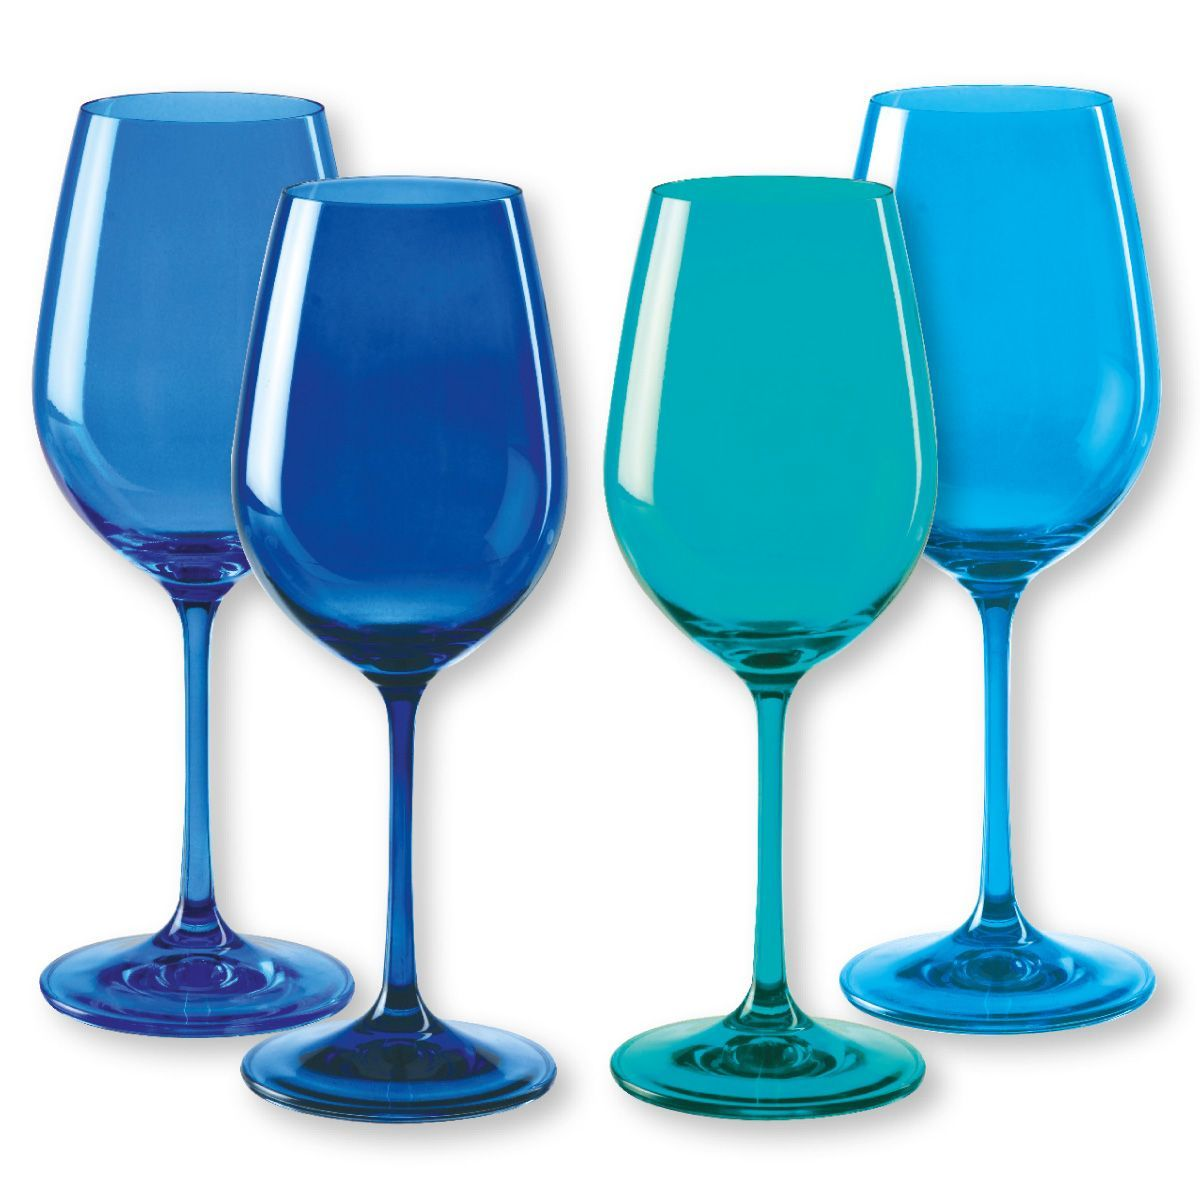 bo te de 4 verres vin cristallin kador bleu cm. Black Bedroom Furniture Sets. Home Design Ideas